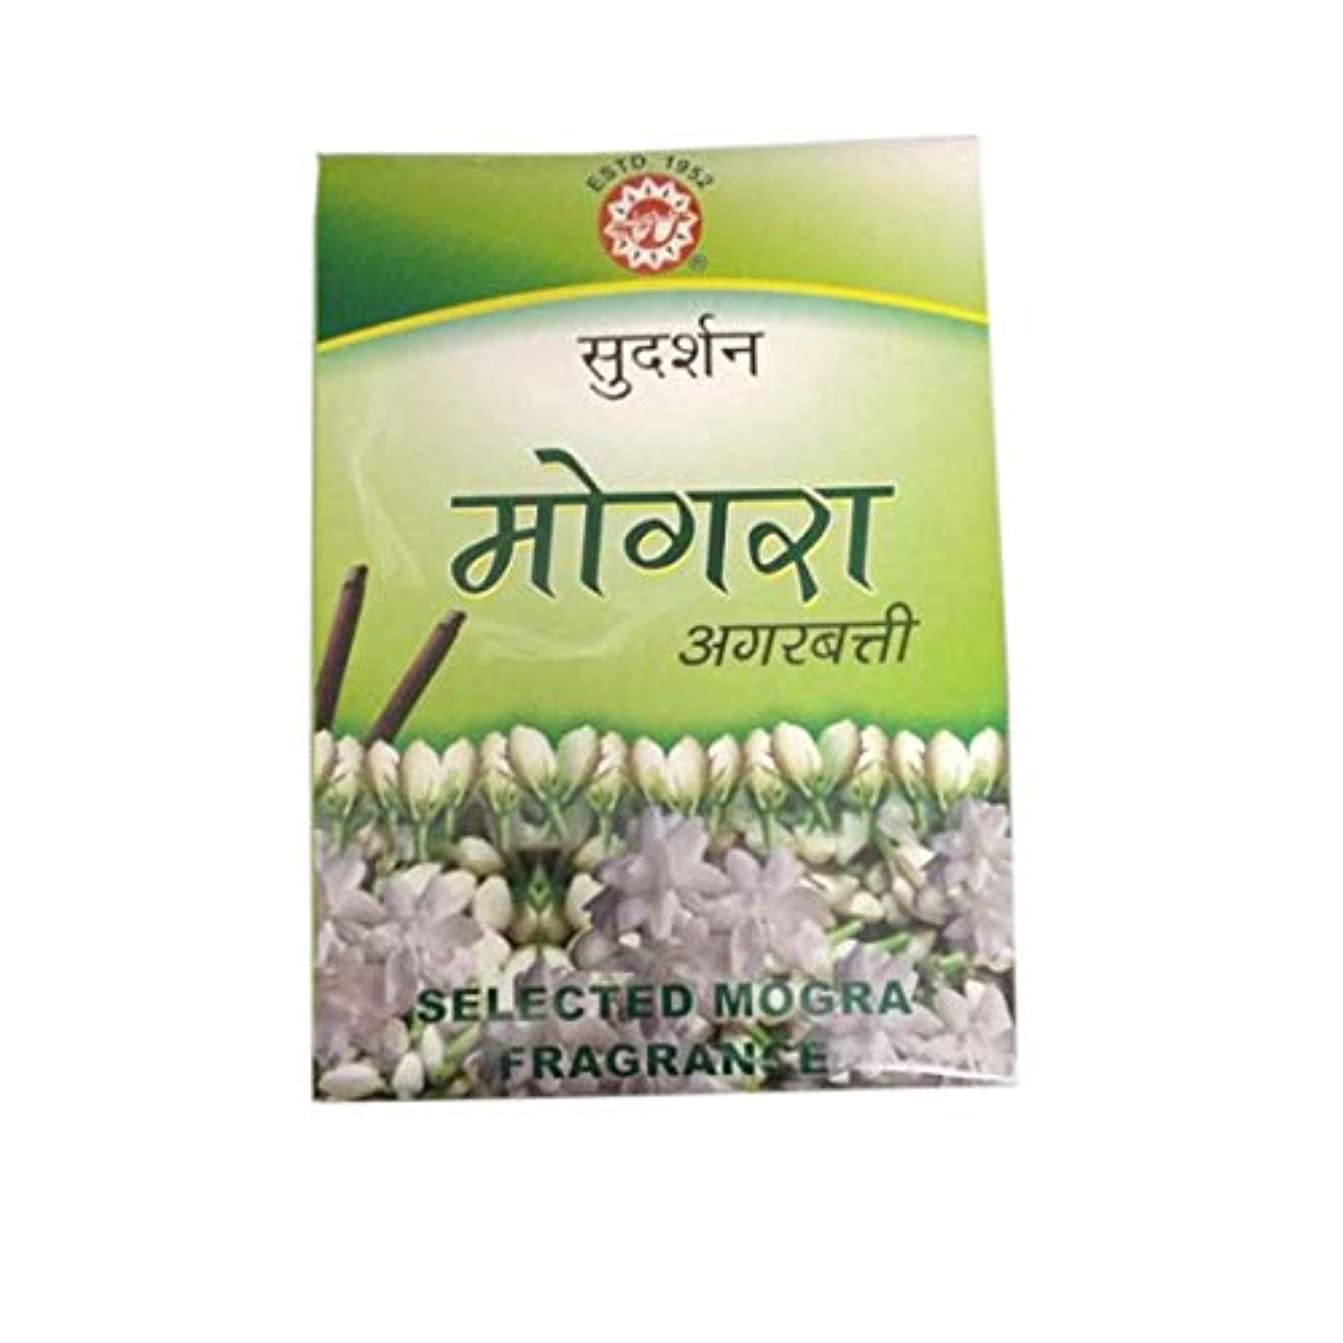 通知ブラザーアンプSudarshan Mogra Agarbatti - 12 Sticks Packet 1 Box Fragrance Incense Sticks for Positivity & Freshness Lavender...